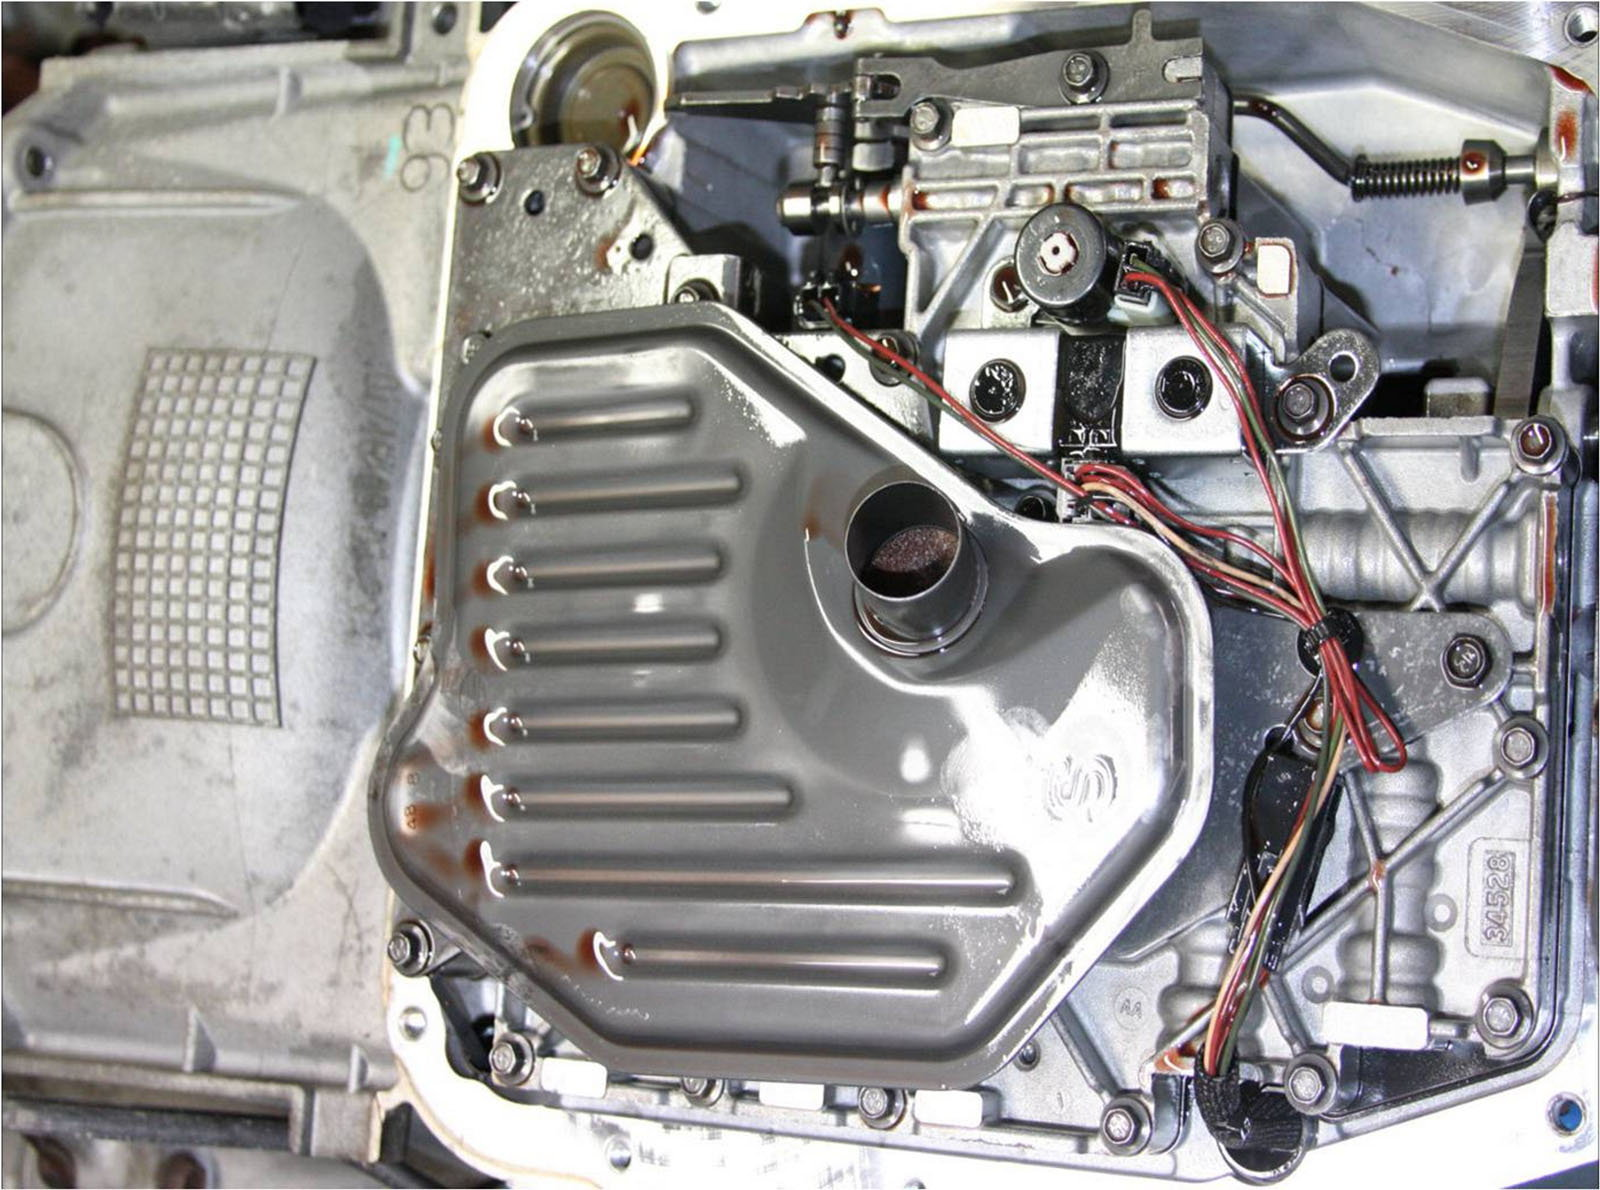 The gray dish is the transmission filter you do not need to replace this but you should clean it